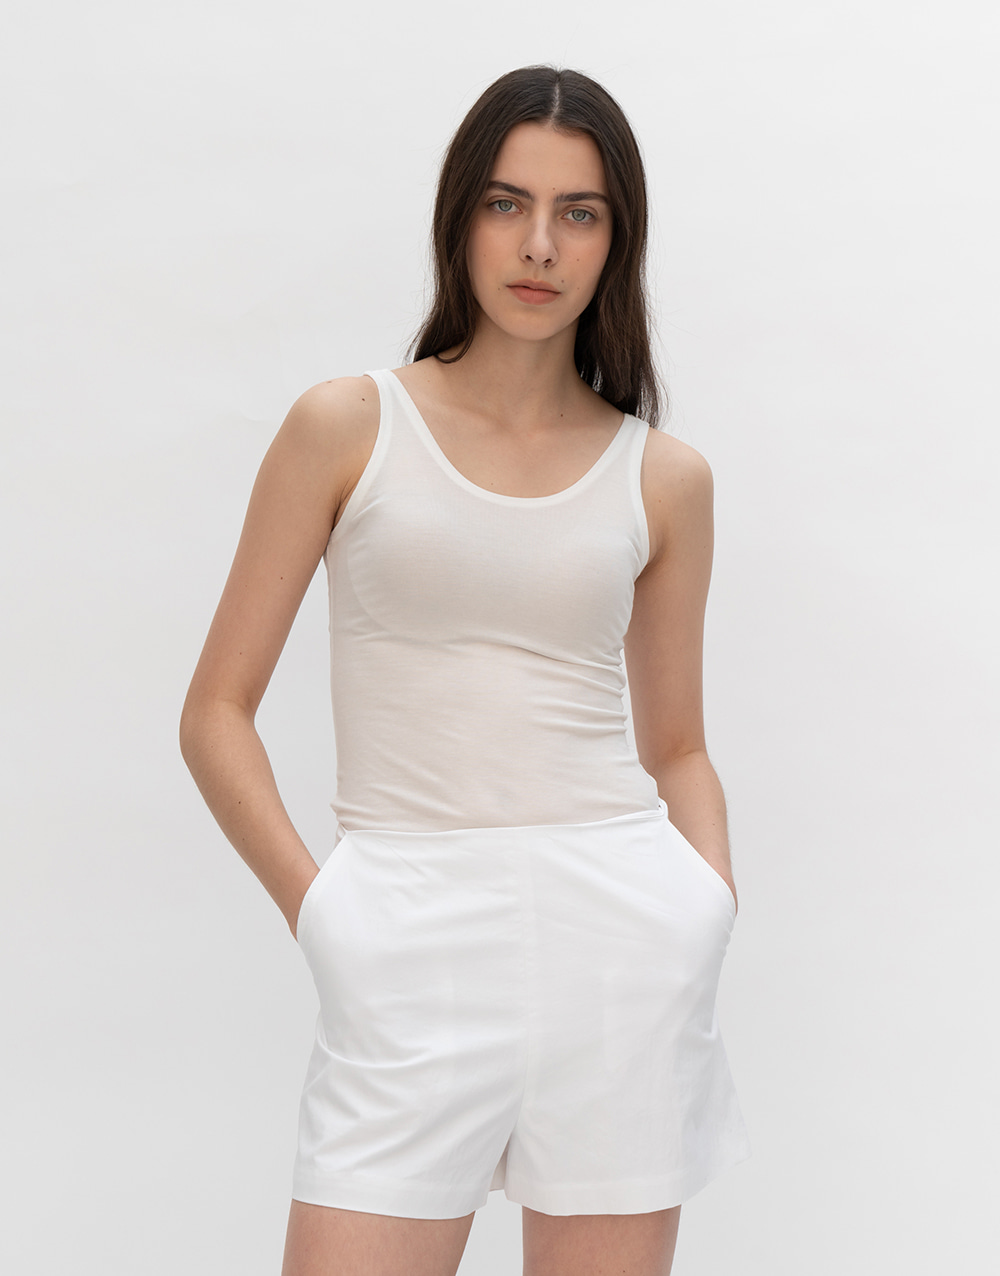 GBH APPAREL ADULT  Lyocell Sleeveless Top    IVORY